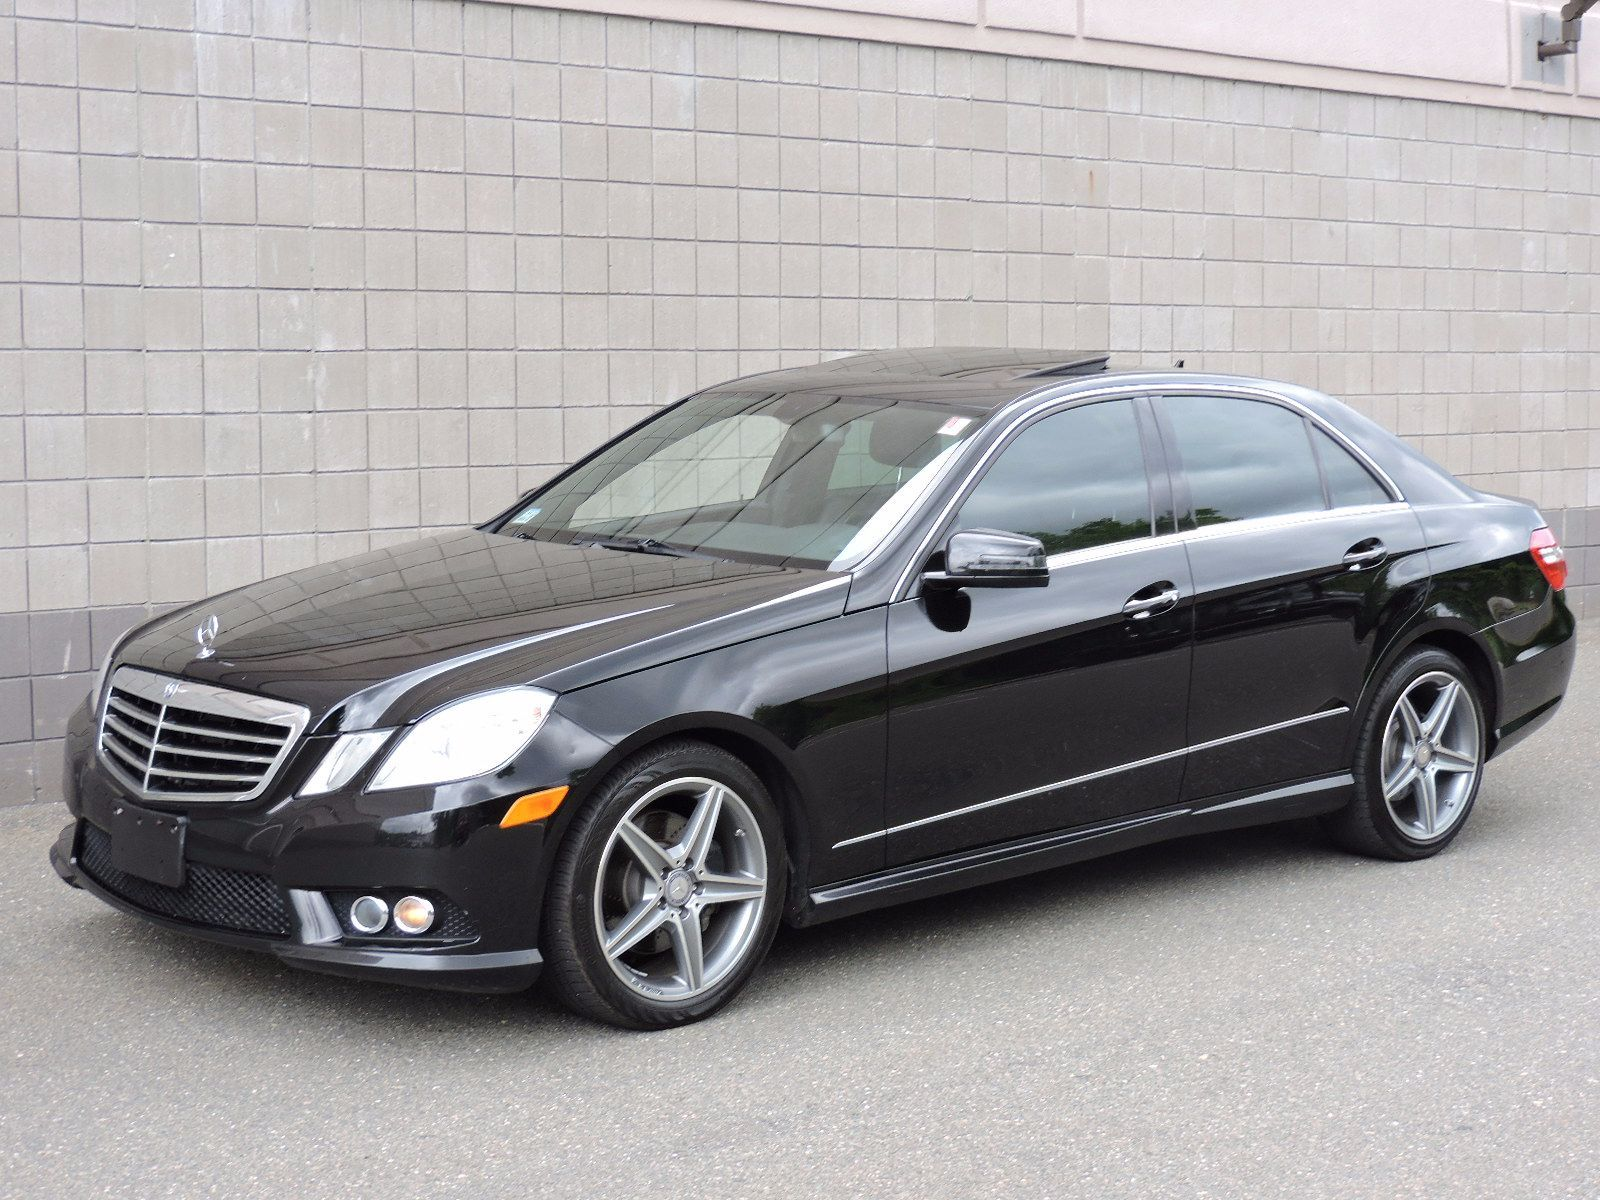 Used 2010 mercedes benz e class e350 sport at saugus auto mall for Mercedes benz us open